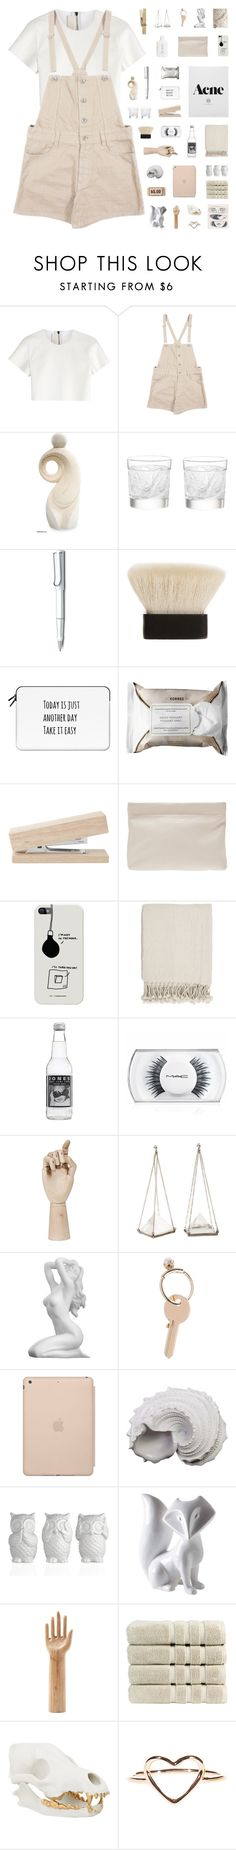 """""""and the simple life (ainsley's set challenge day 5)"""" by iced-lemons ❤ liked on Polyvore featuring Neil Barrett, NOVICA, Lalique, Lamy, Claudio Riaz, Casetify, Korres, Acne Studios, Surya and MAC Cosmetics"""